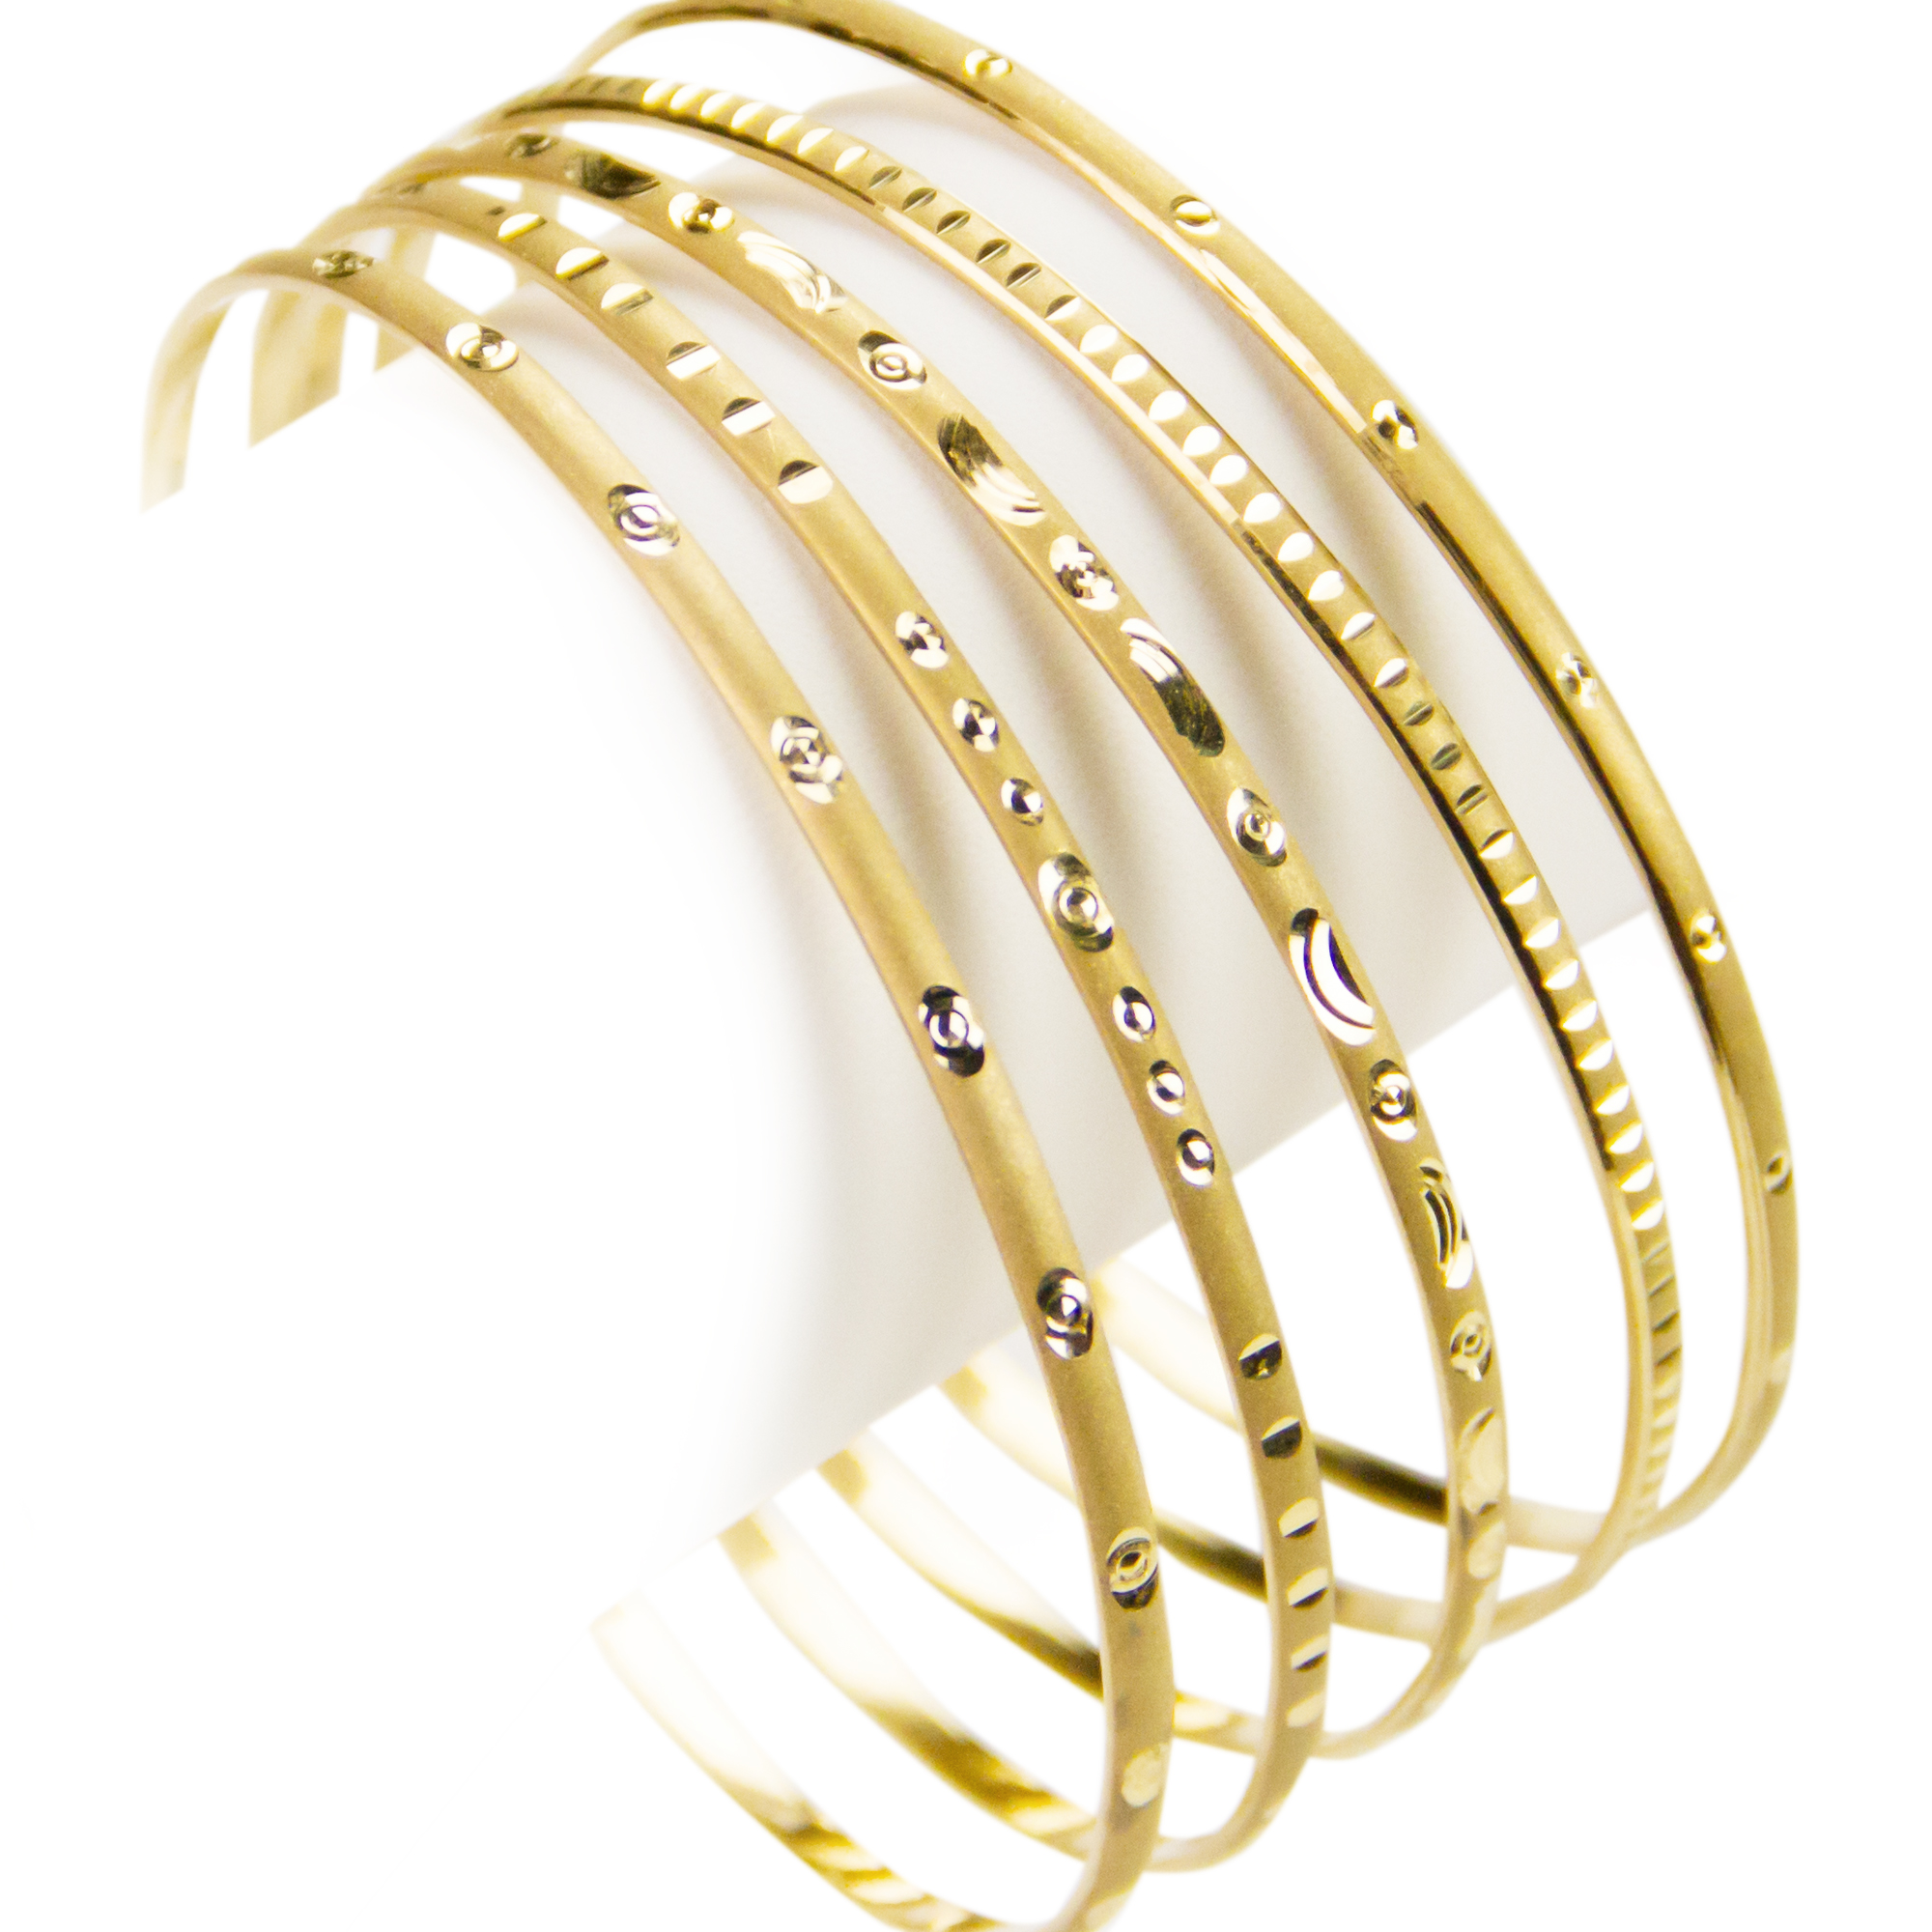 bangles amazon bangle in jewellery online dp store prices gold collection buy india thin senco low yellow at aura